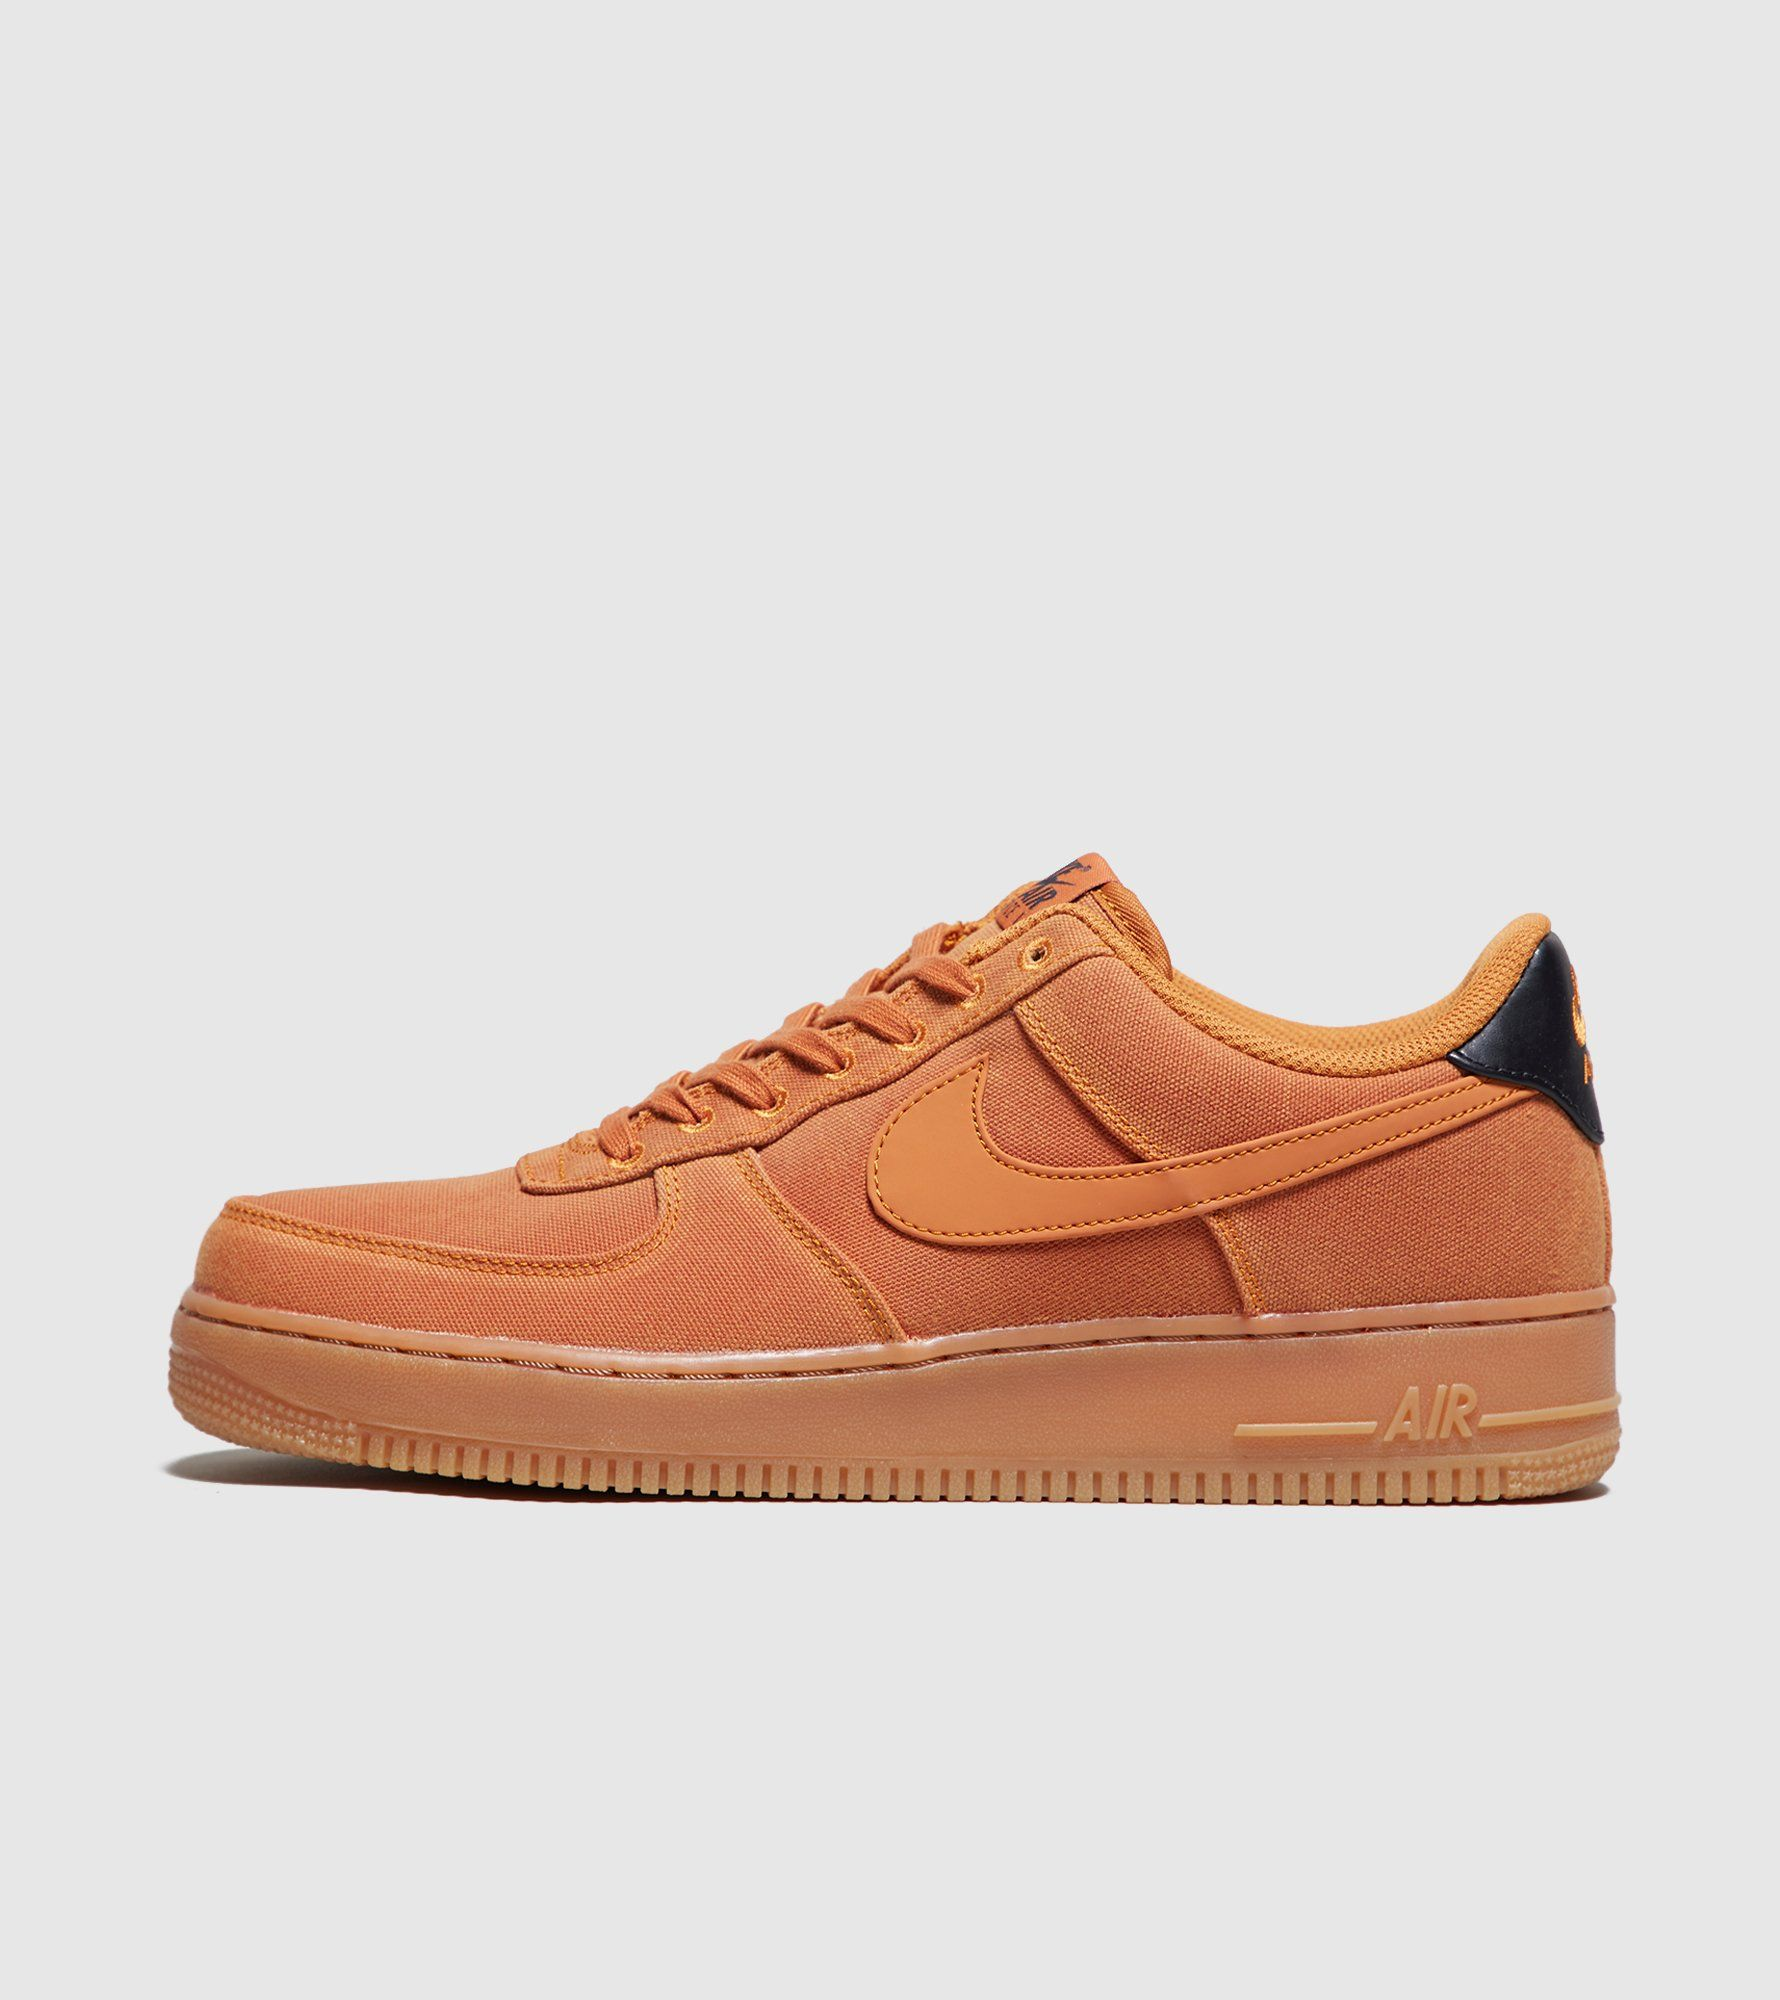 Nike Air Force 1 '07 LV8 Canvas